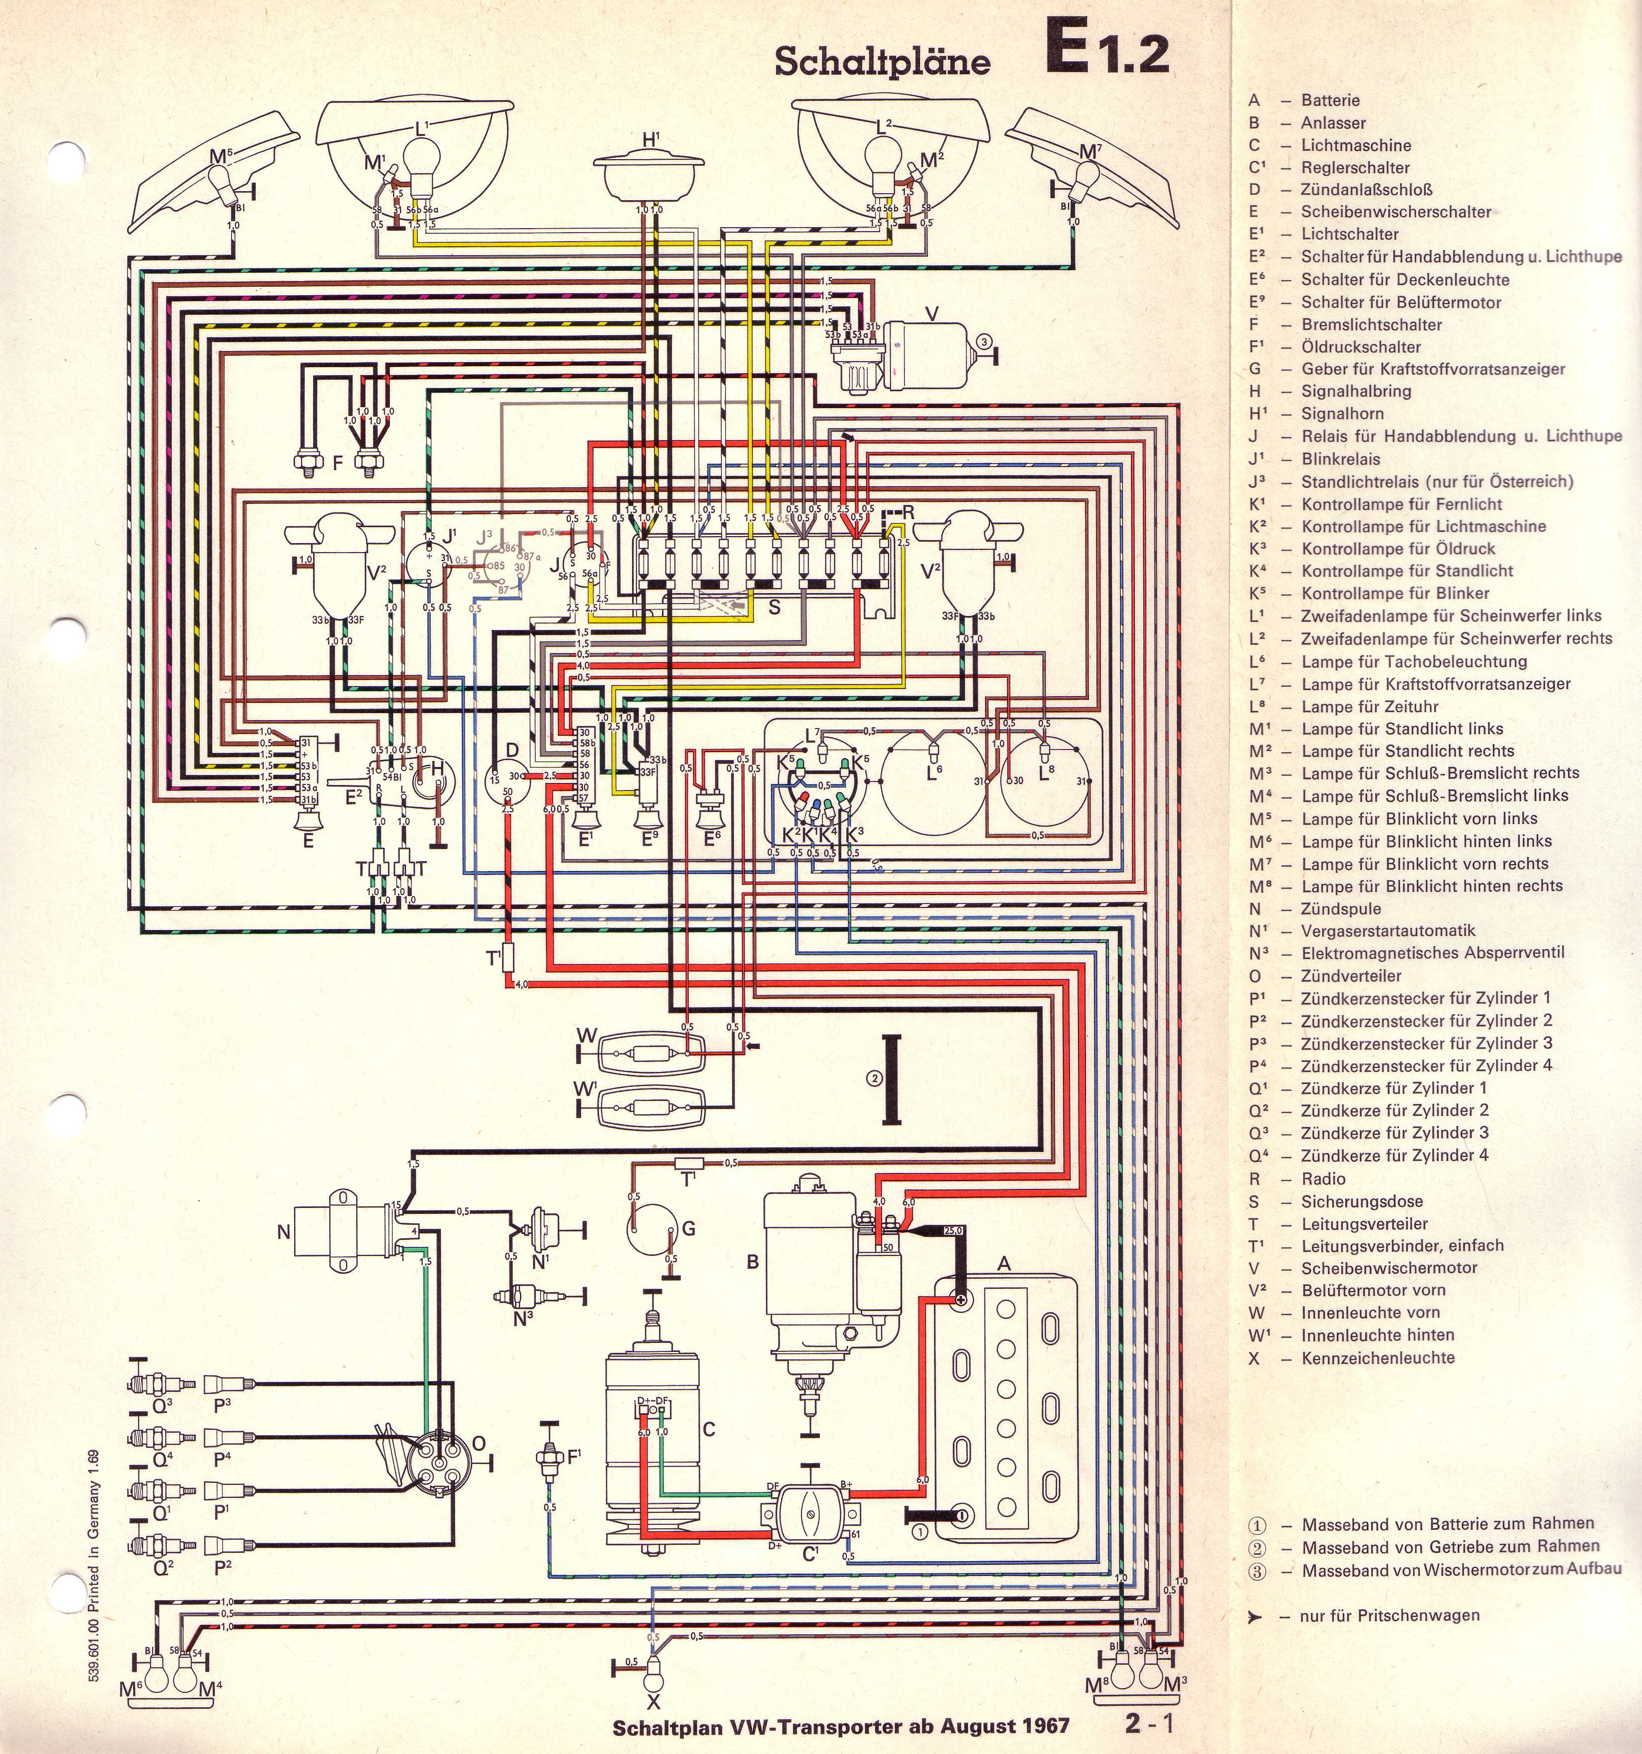 Vw T2 Wiring Diagram 1977 Library Volkswagen Transporter 16 L Vergasermotor Ab August 1967